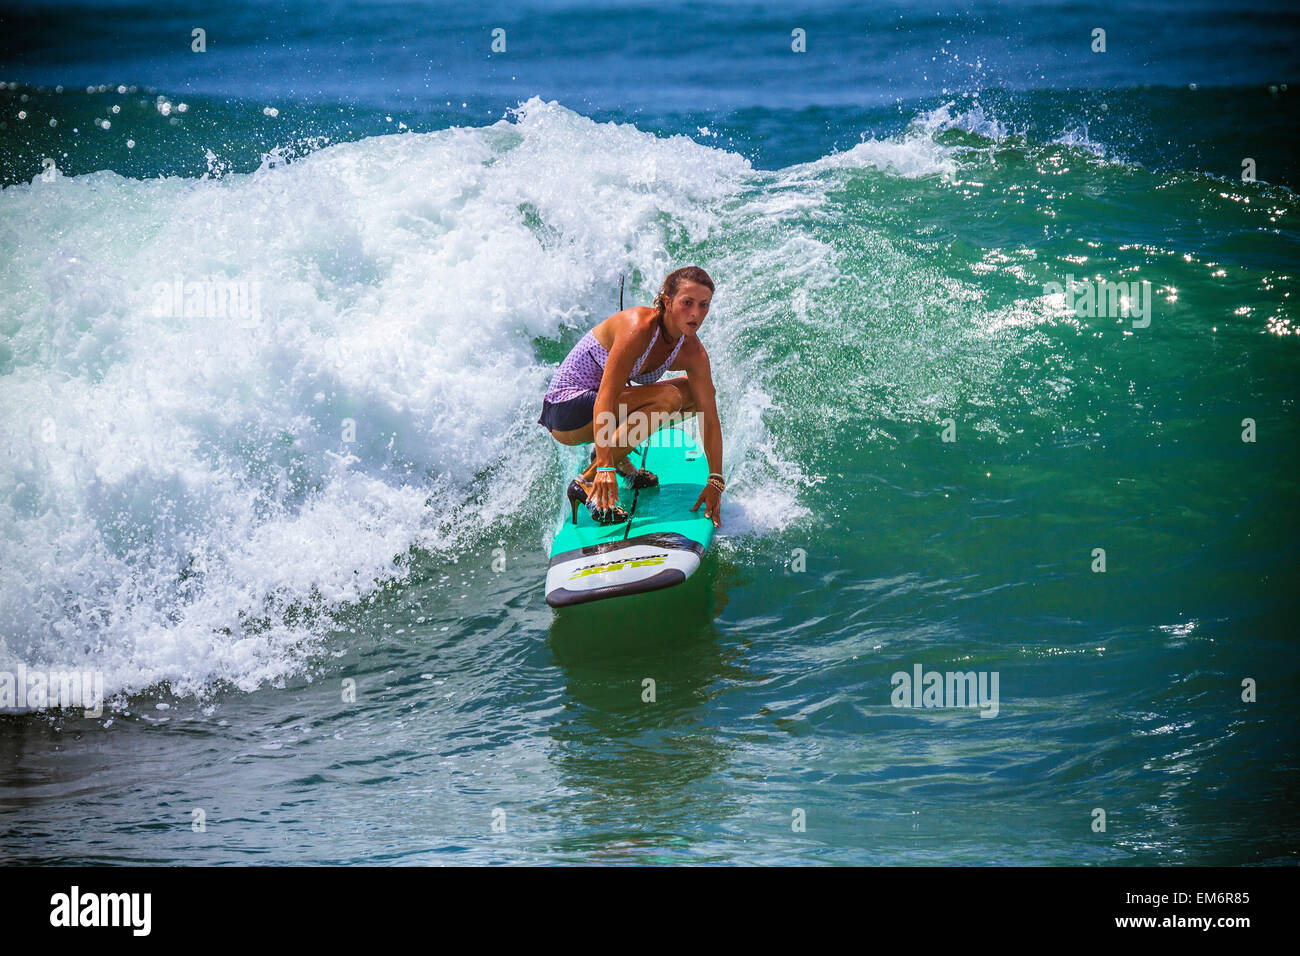 Surfer girl catches wave in high heels. - Stock Image